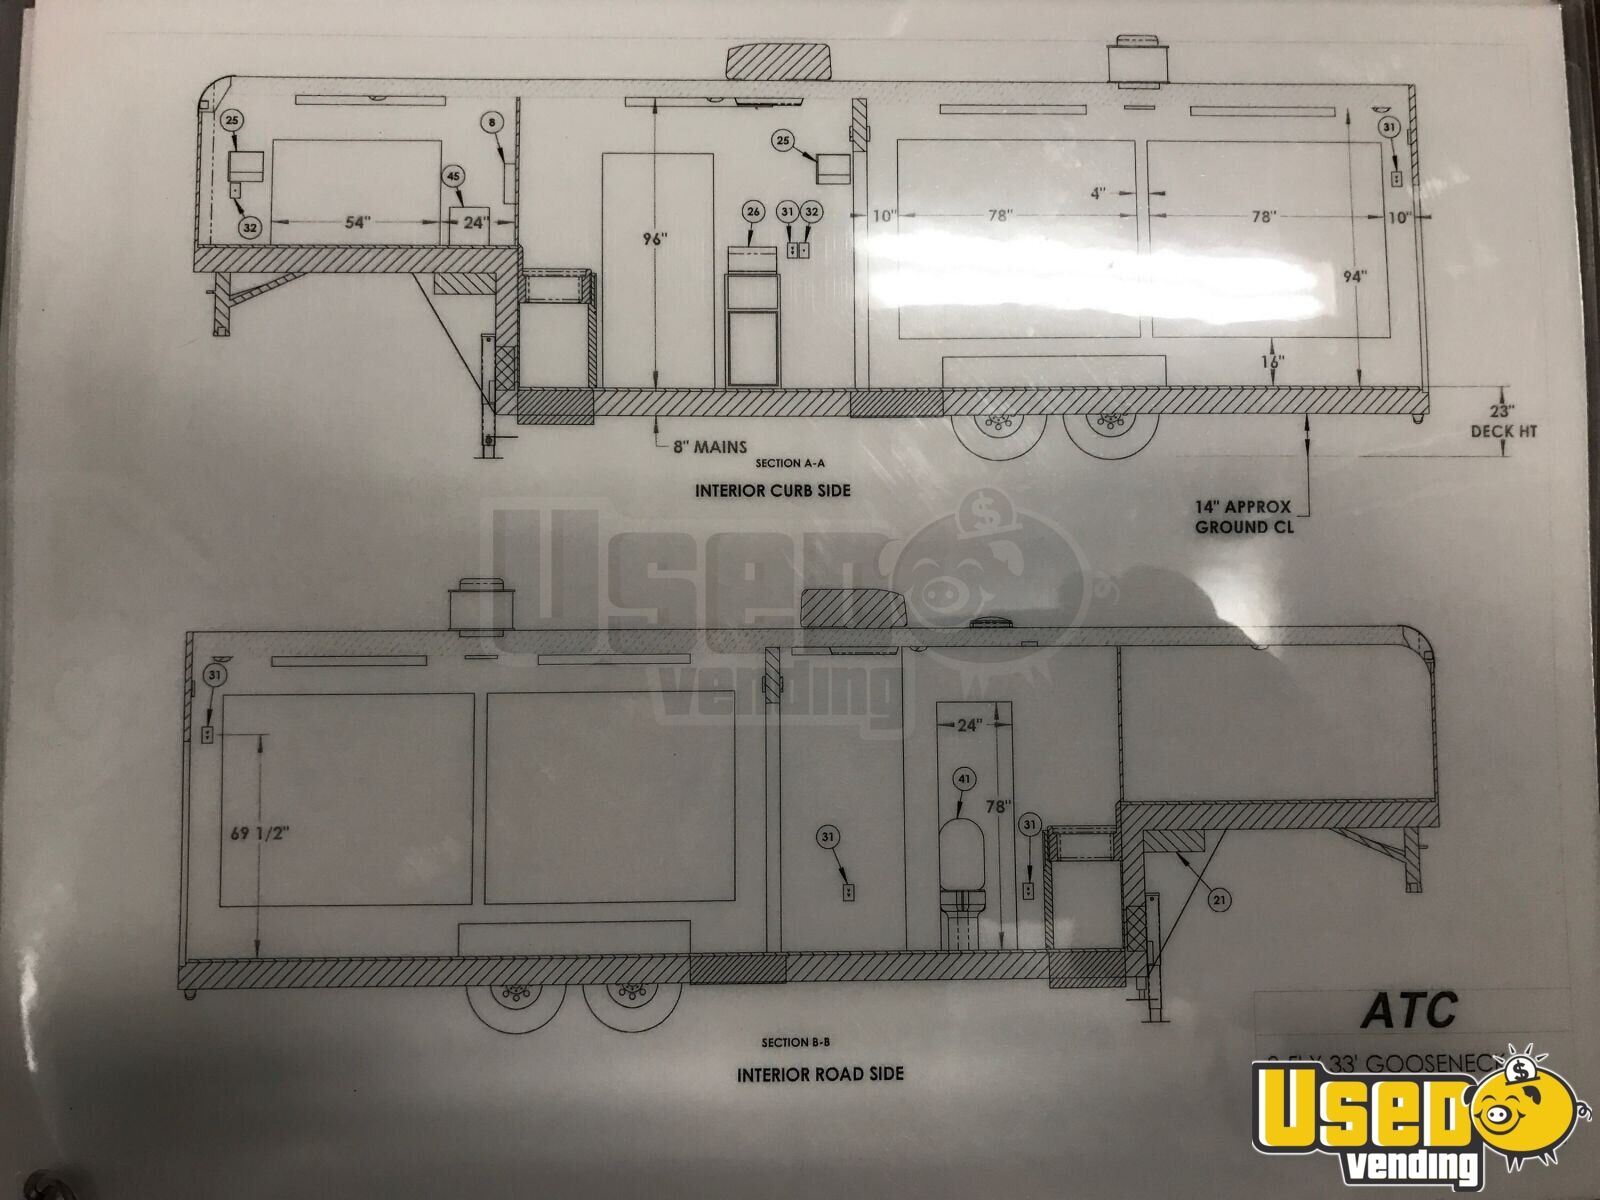 Antares Vending Machine Electrical Circuit Diagram 50 Wiring Concession Trailer Schematics 25565 3 J Xl 8 5 X 33 Food Used For